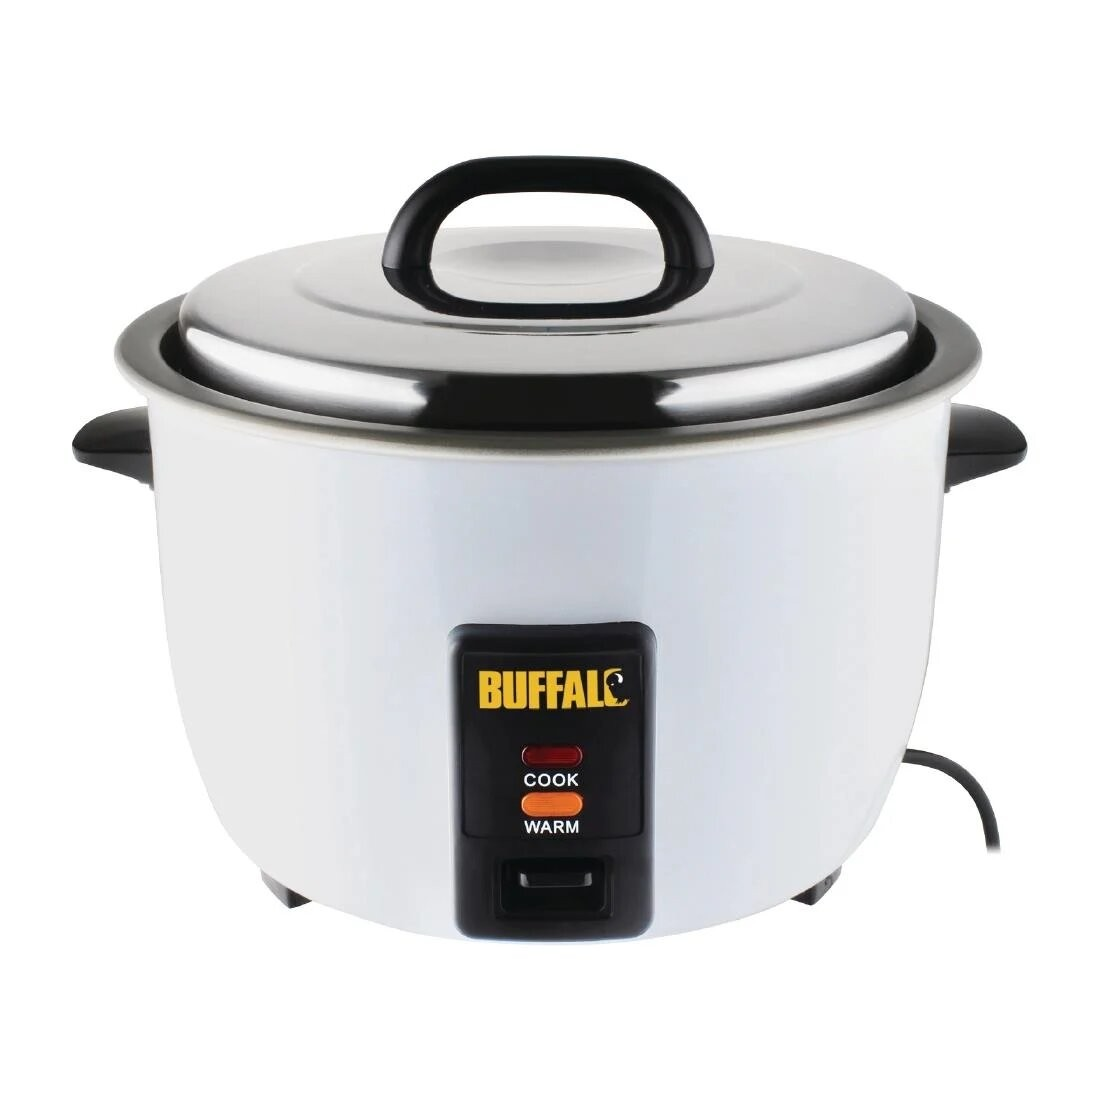 Buffalo CN324 Stainless Steel Non Stick Rice Cooker - 10 Litres